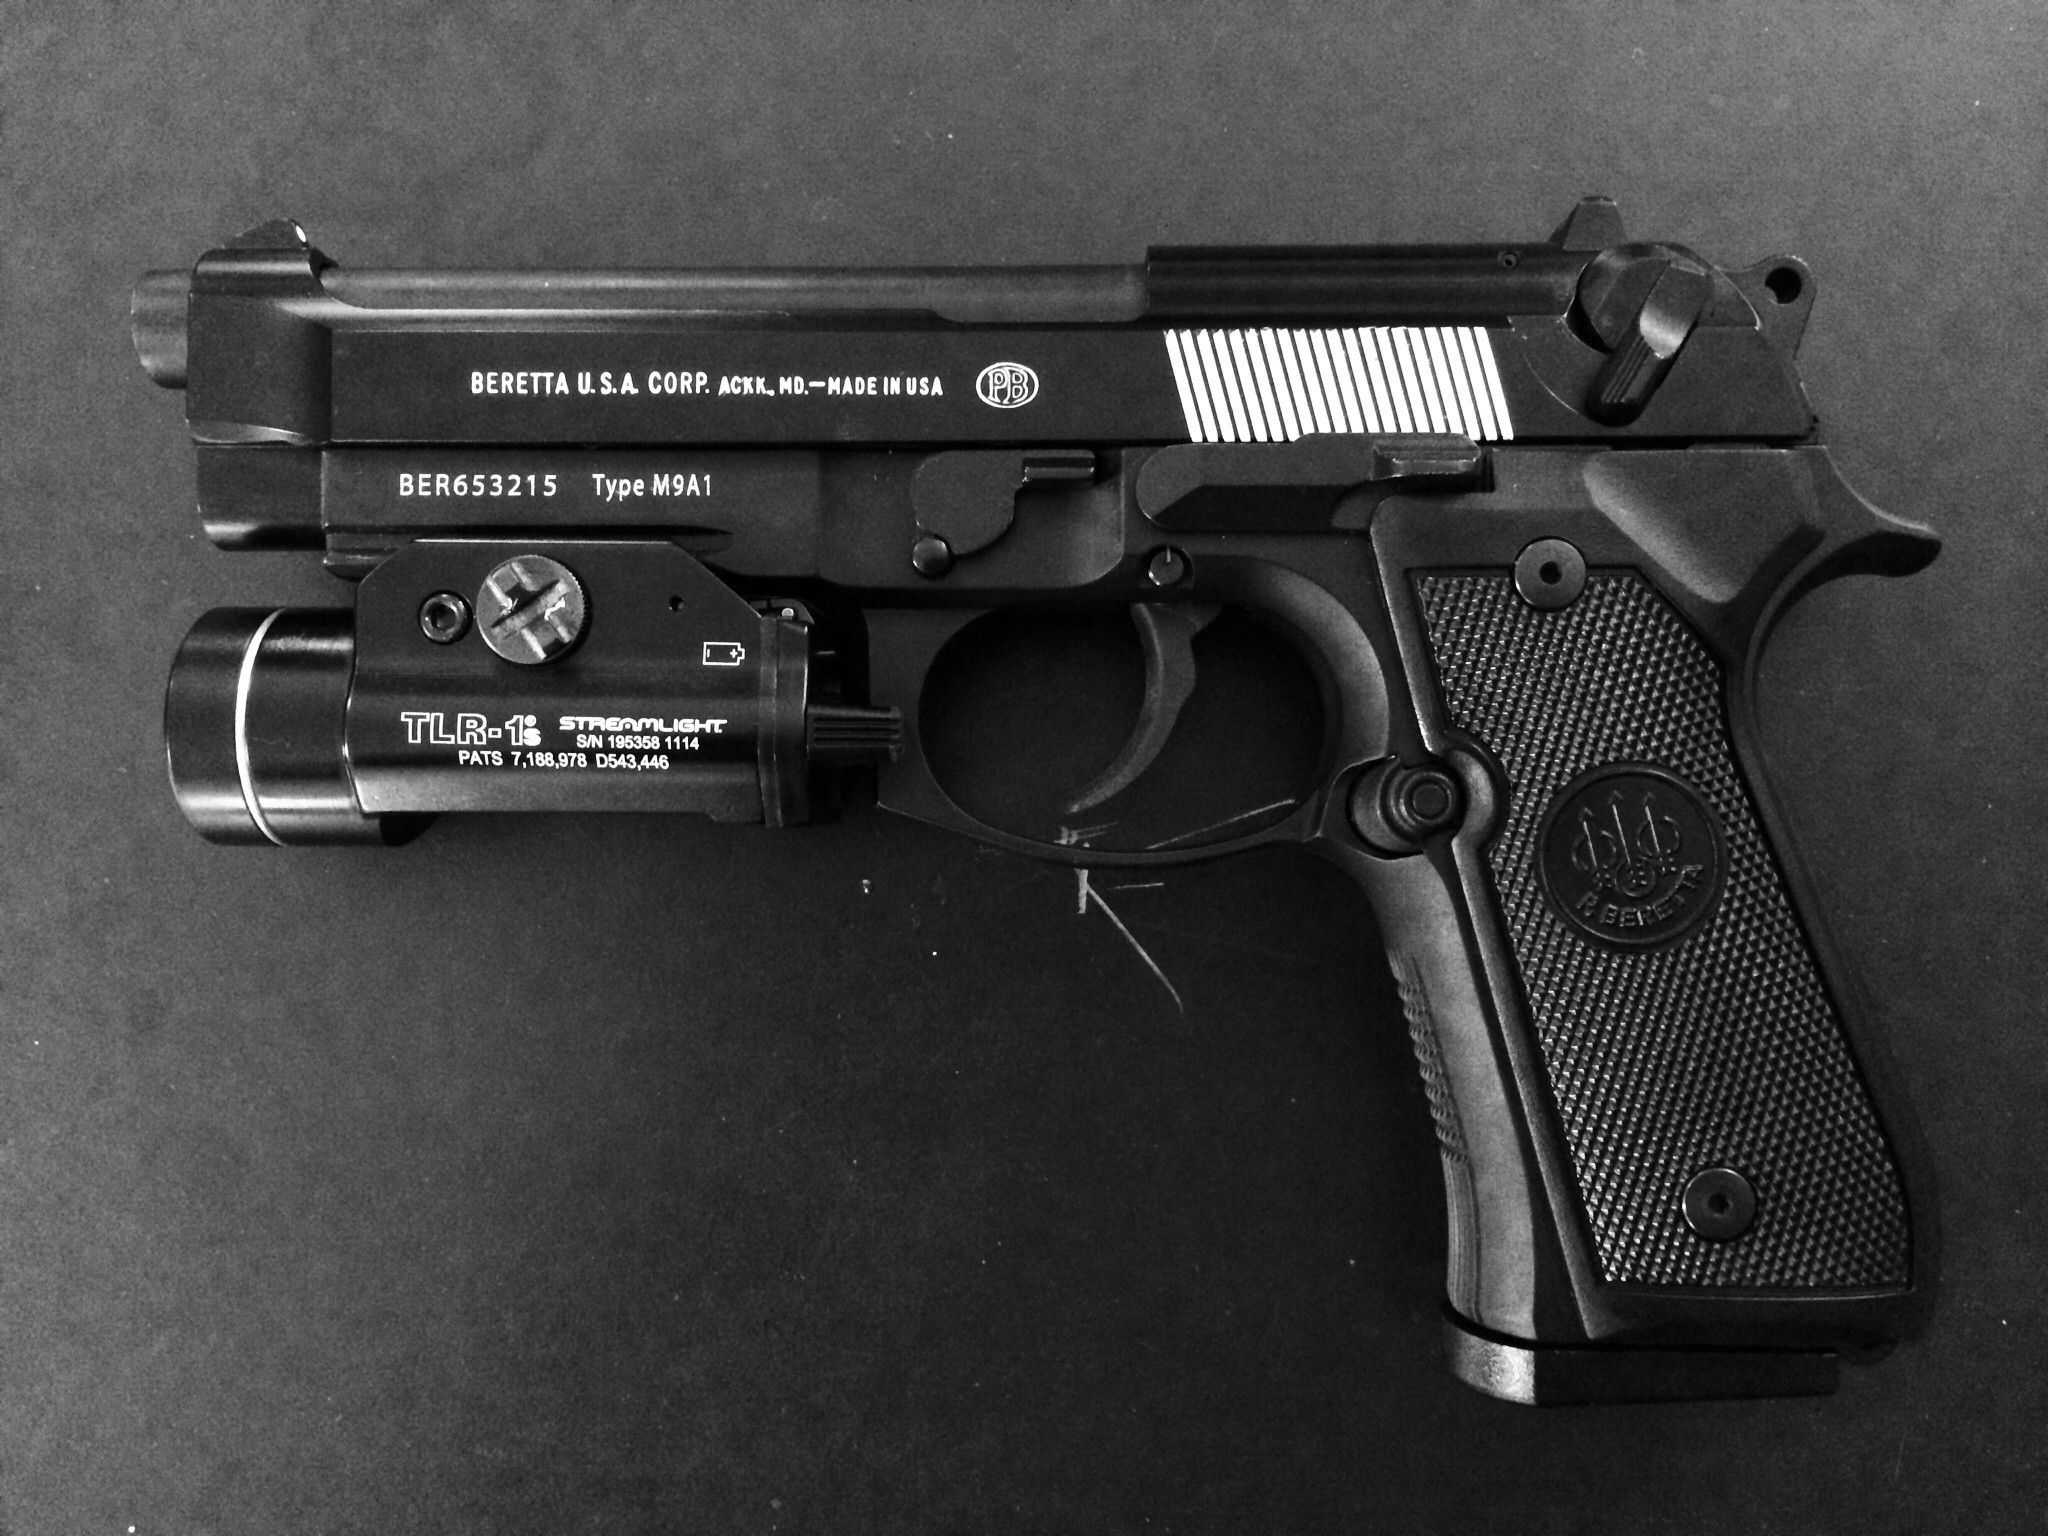 Beretta M9A1 with TLR-1S weapon light Loading that magazine is a ...